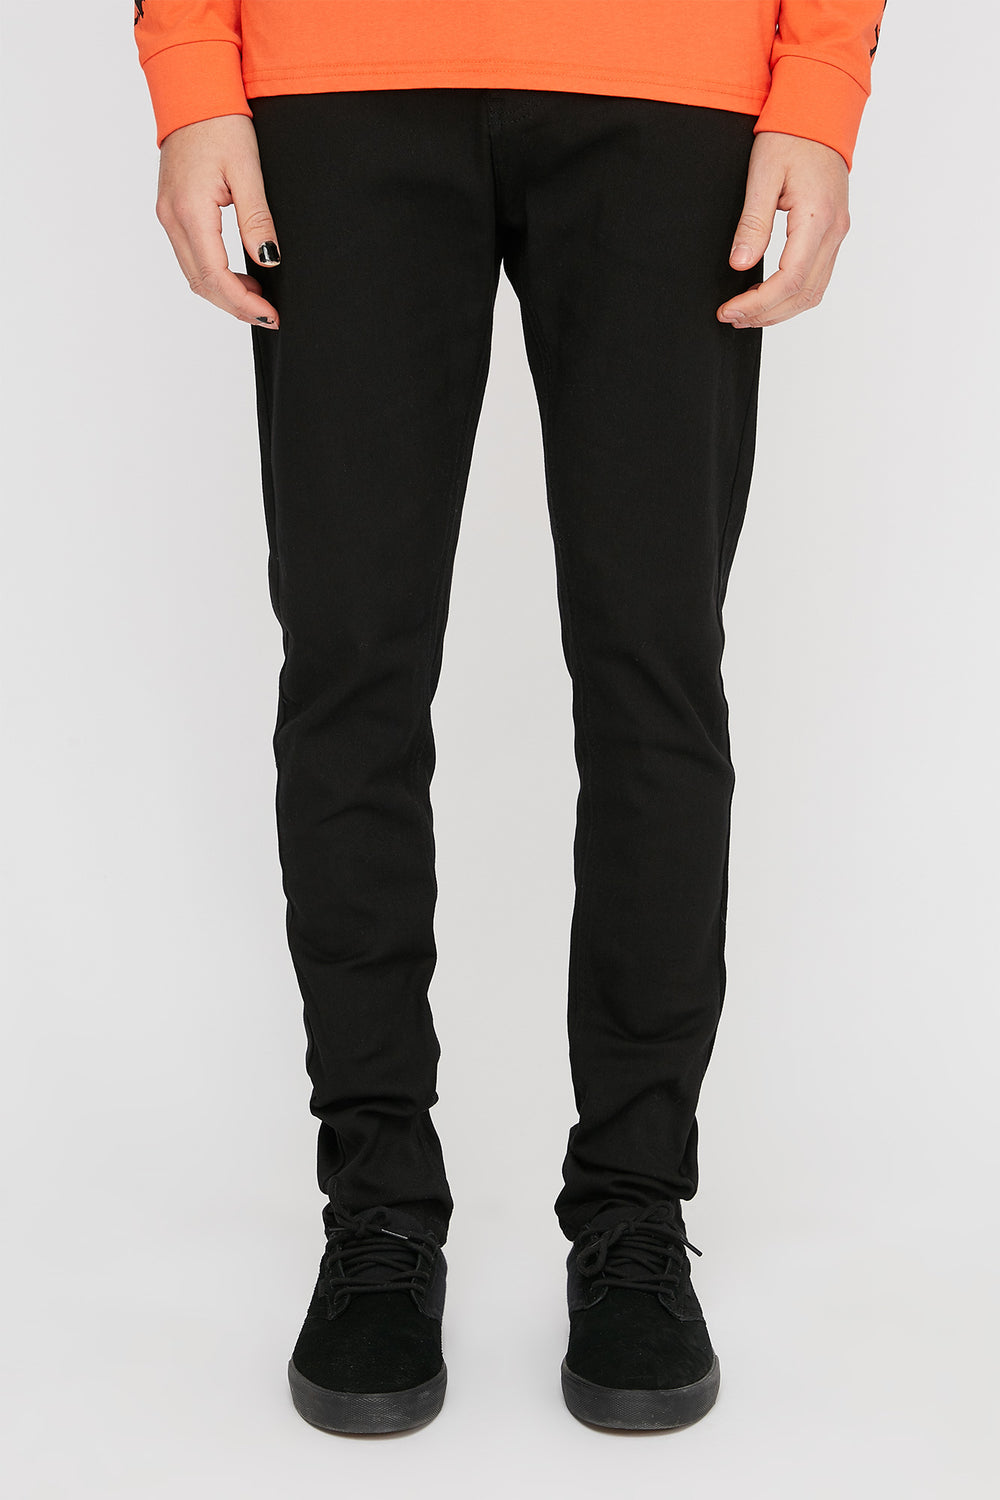 Zoo York Mens Stretch Slim Jeans Black